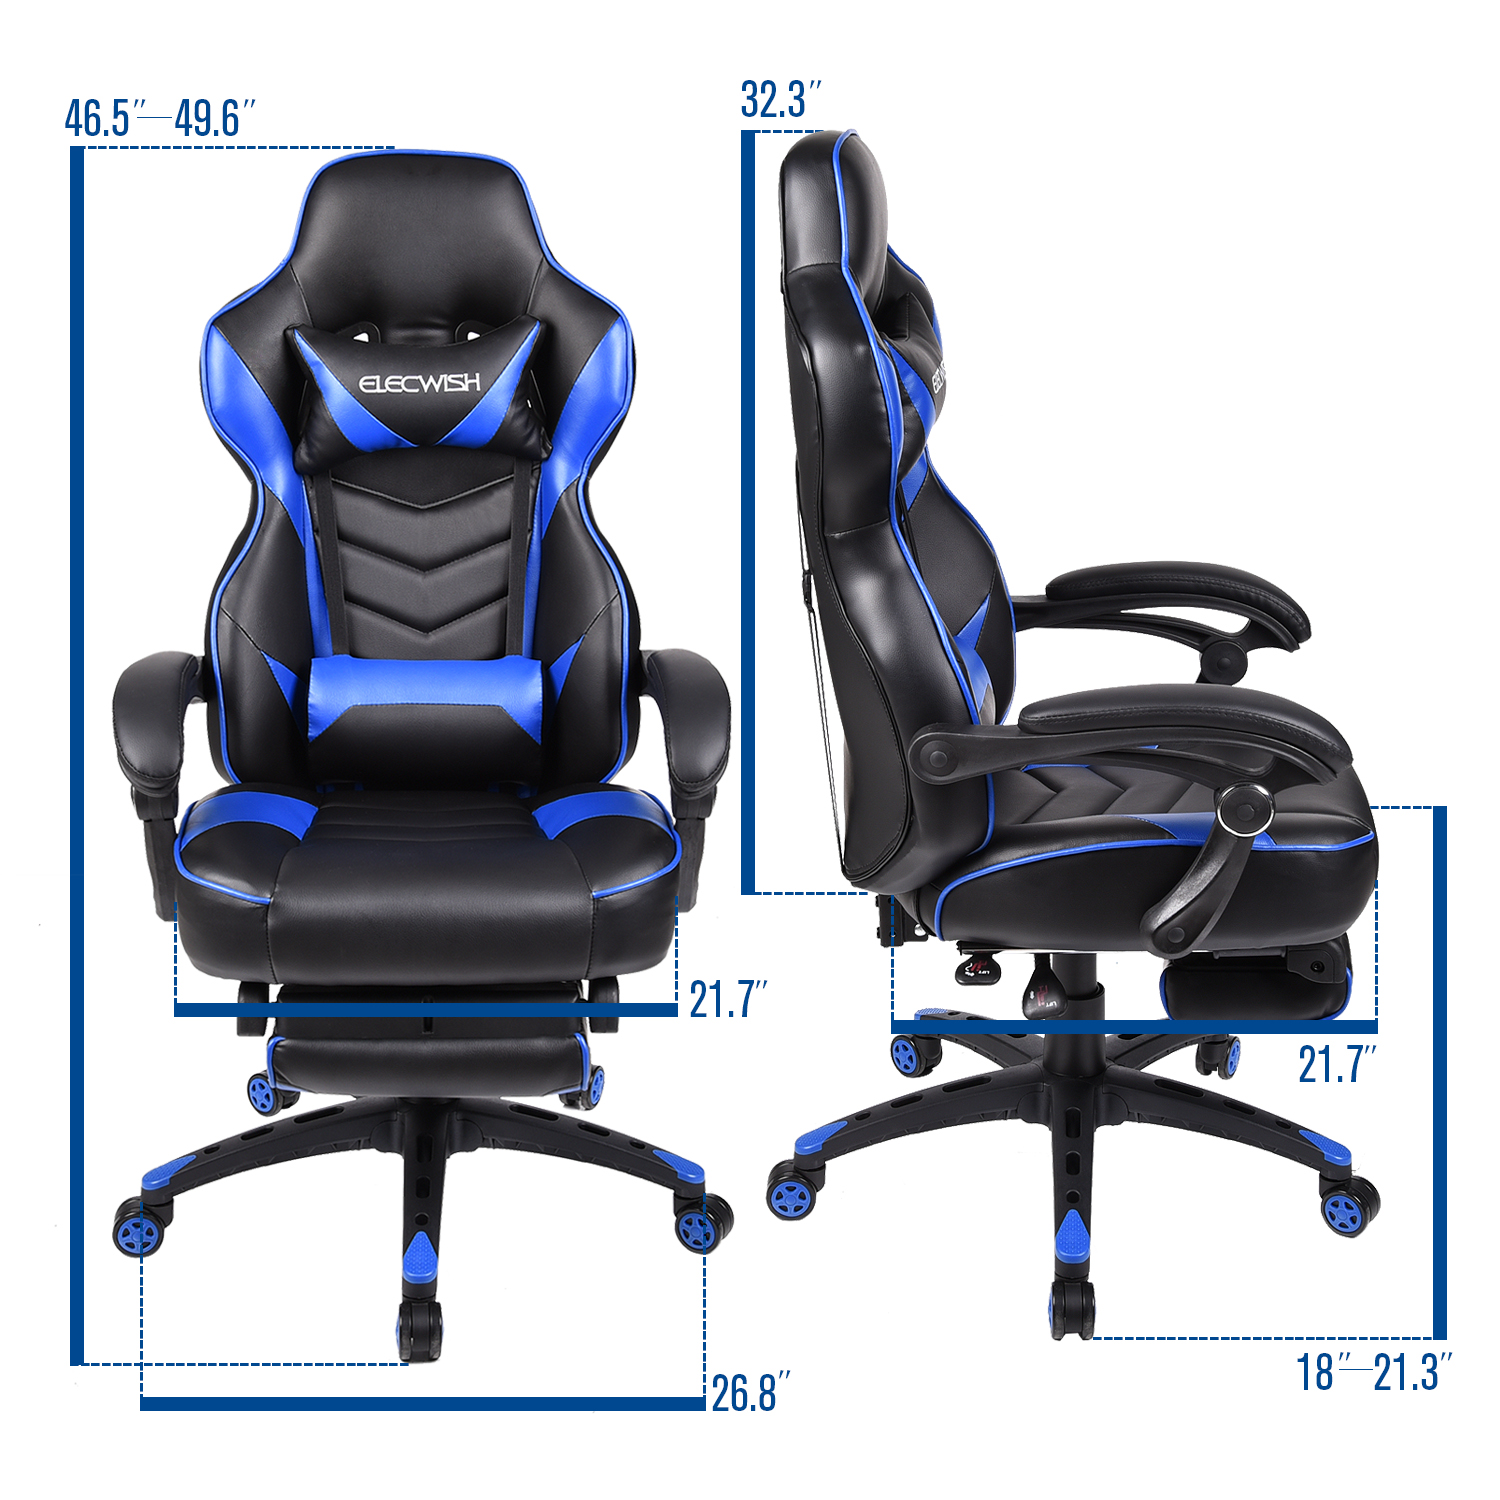 Recliner Computer Chair Soltekonline Elecwish Office Gaming Chair Racing Recliner